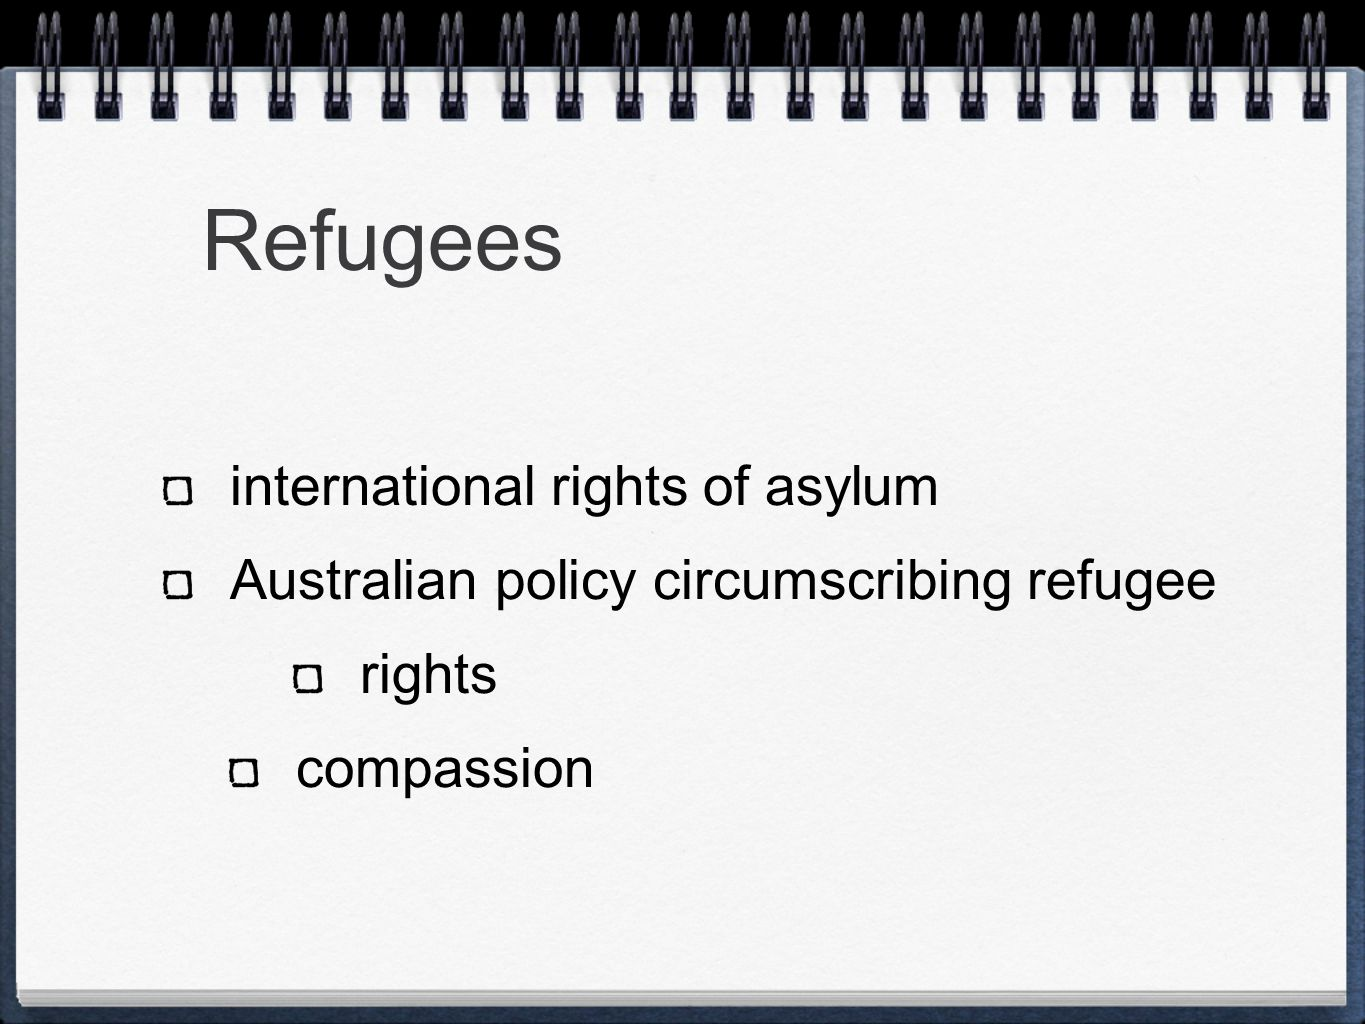 Refugees international rights of asylum Australian policy circumscribing refugee rights compassion